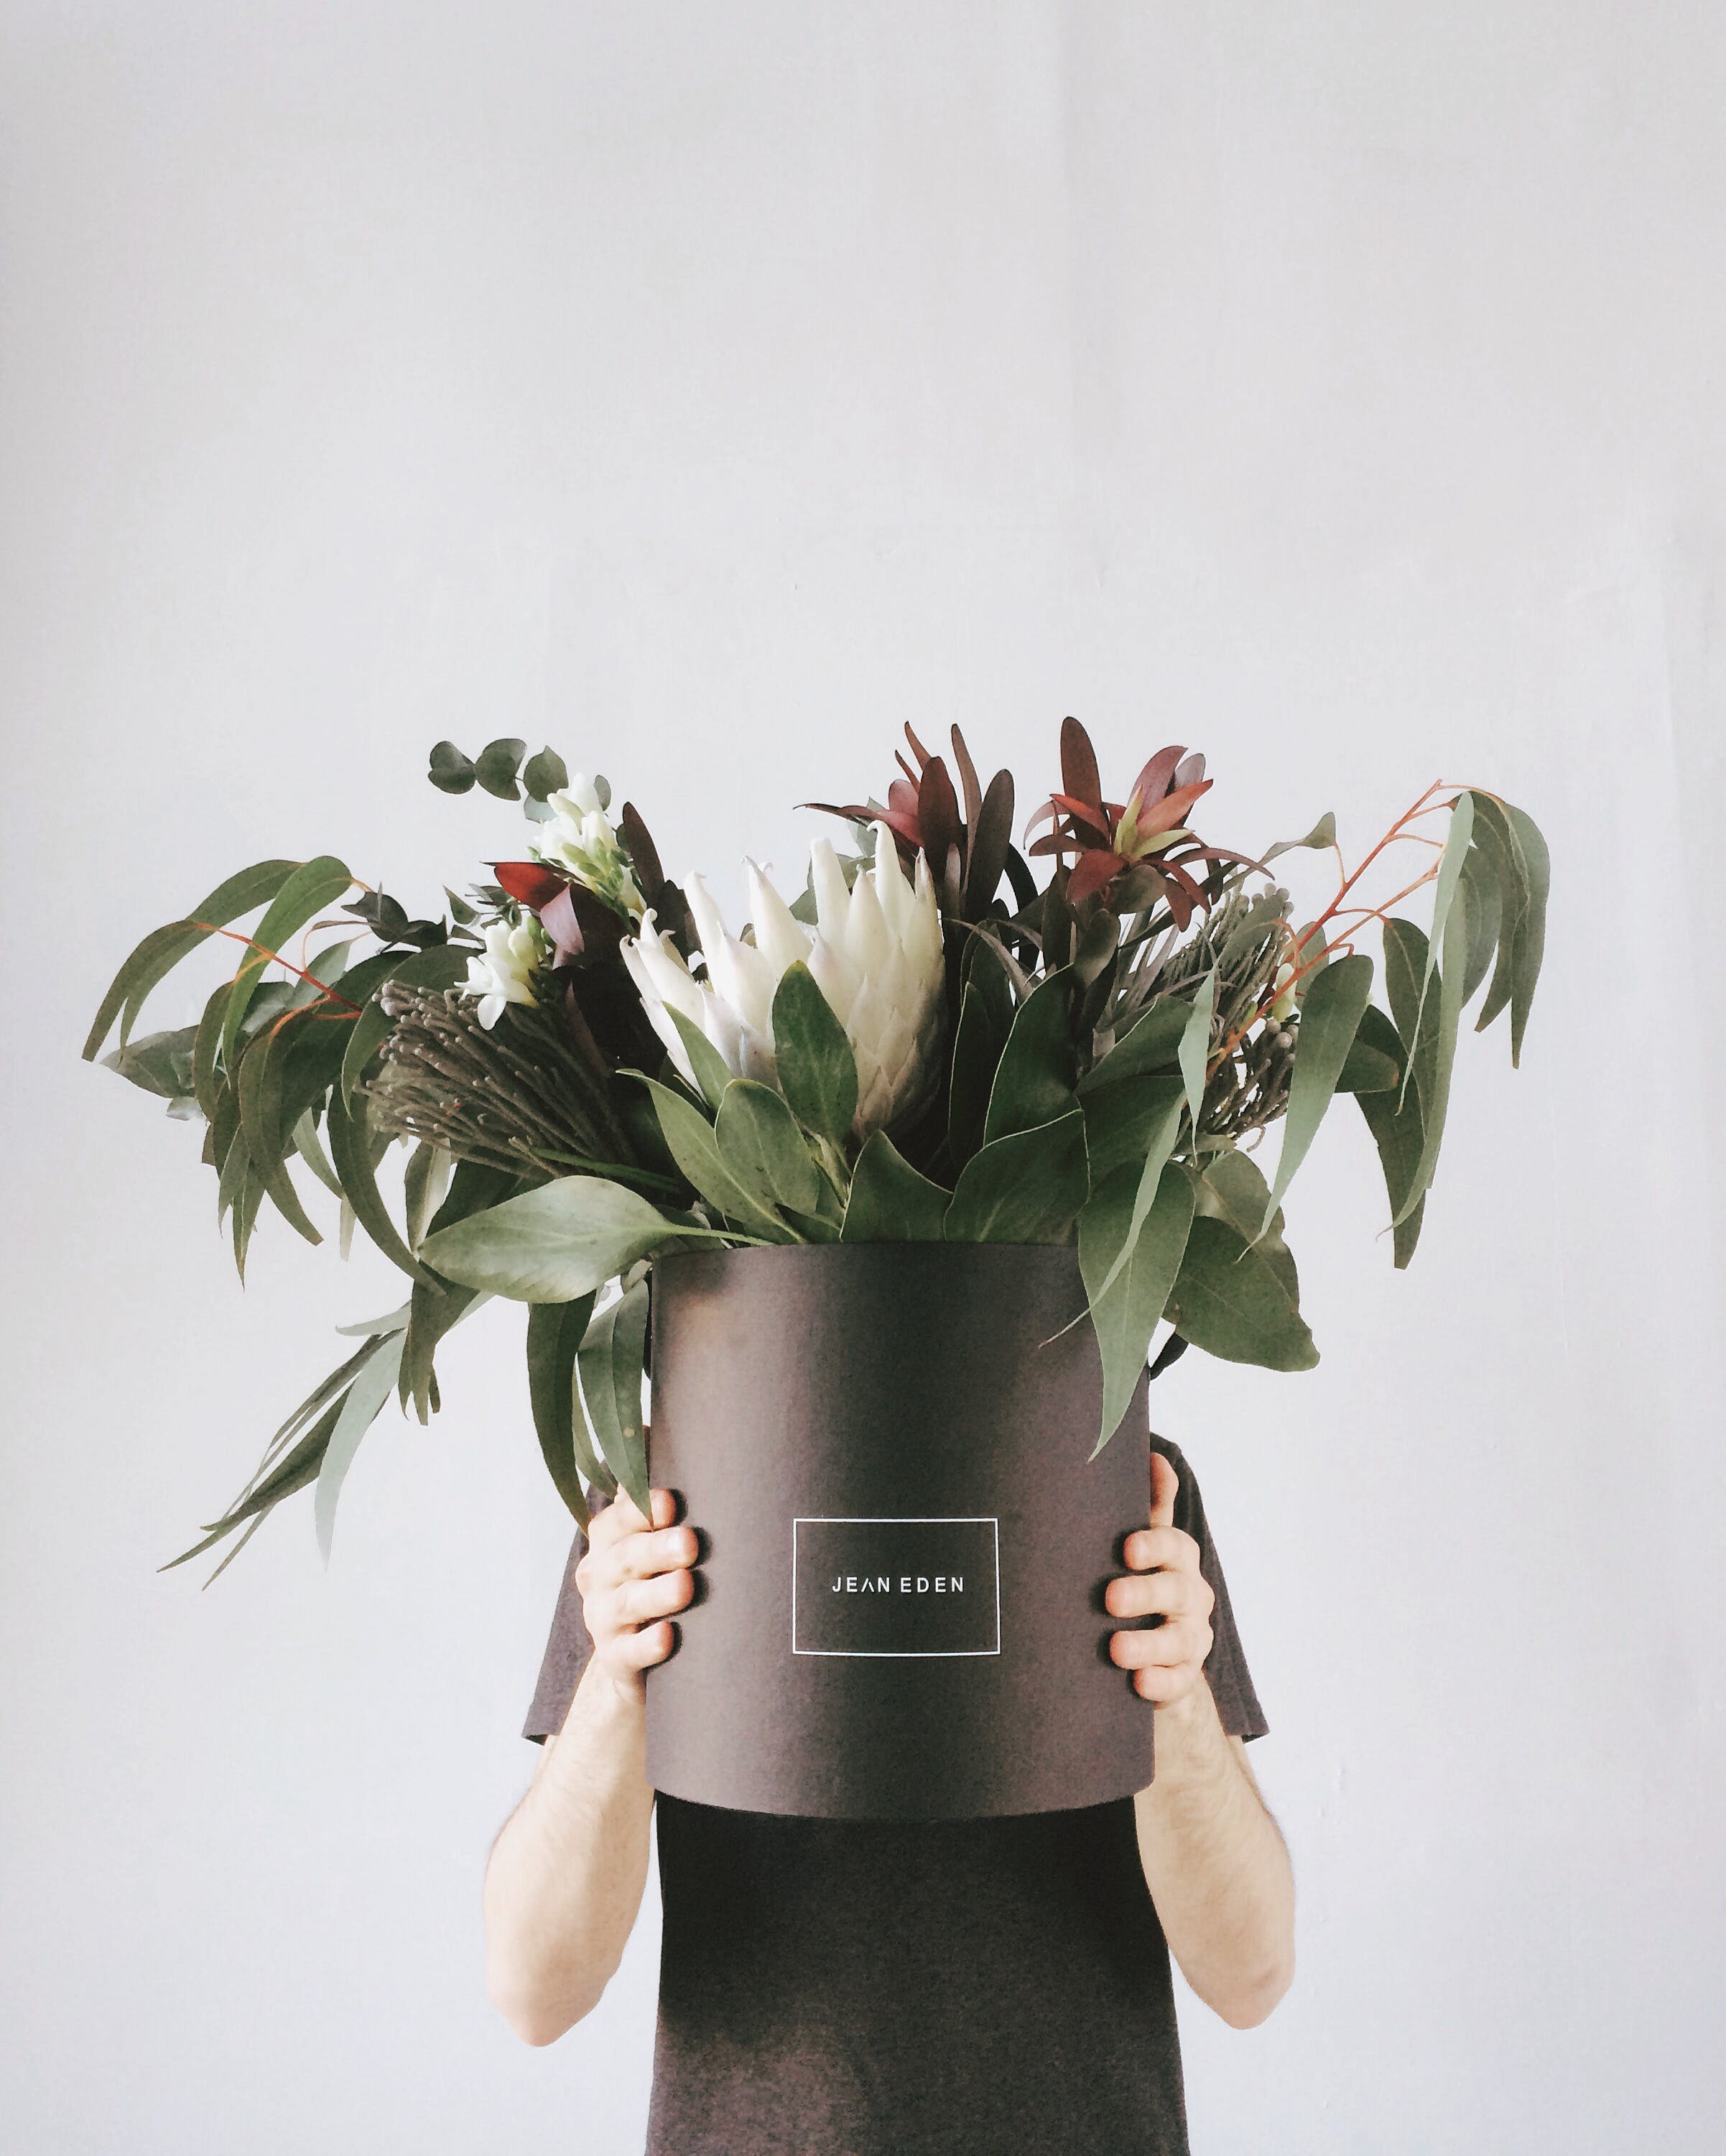 Person in Black T-shirt Holding Potted Flowers